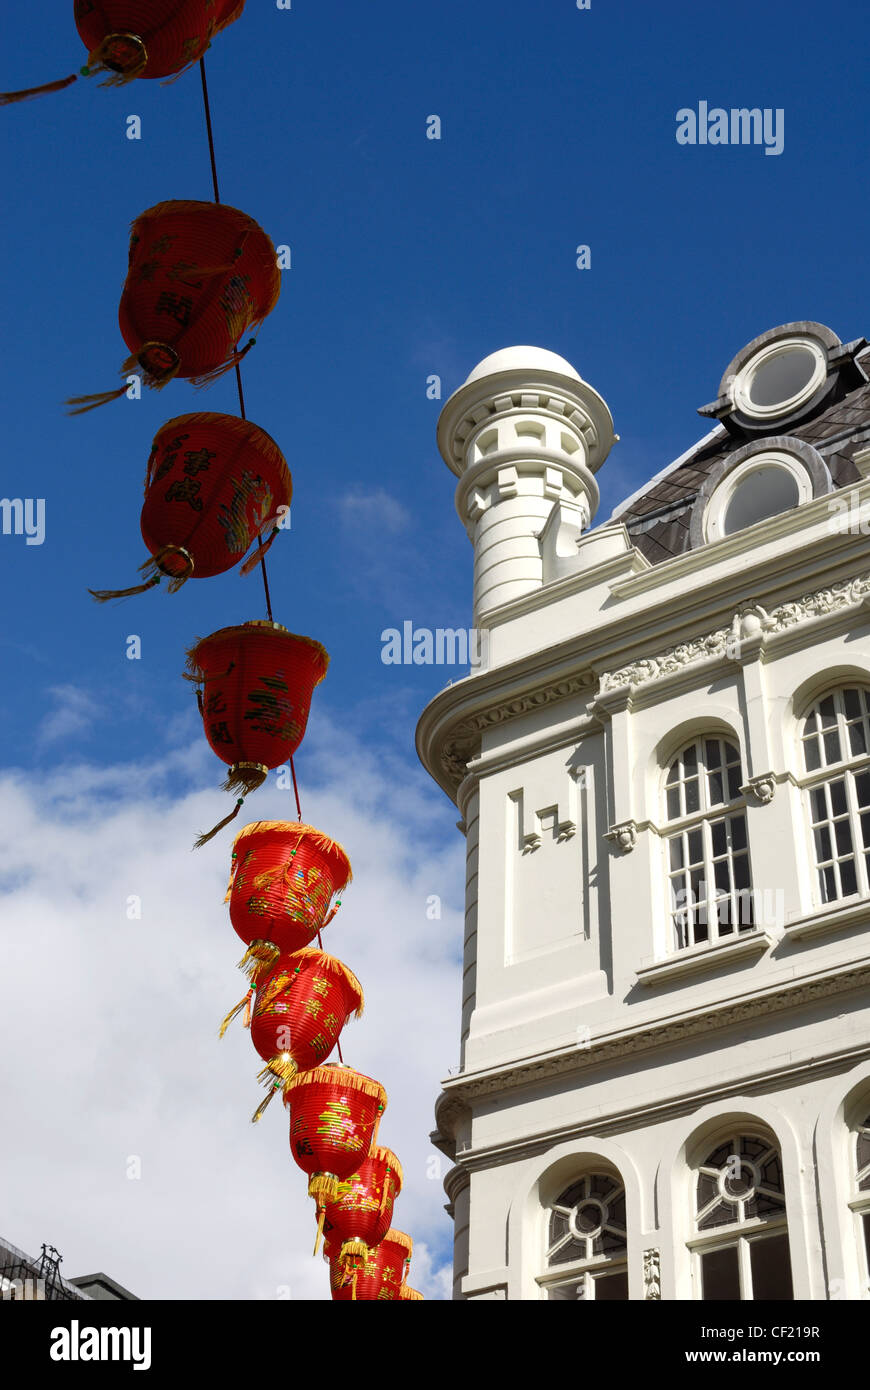 Lanterns hanging above the street in London's Chinatown. - Stock Image